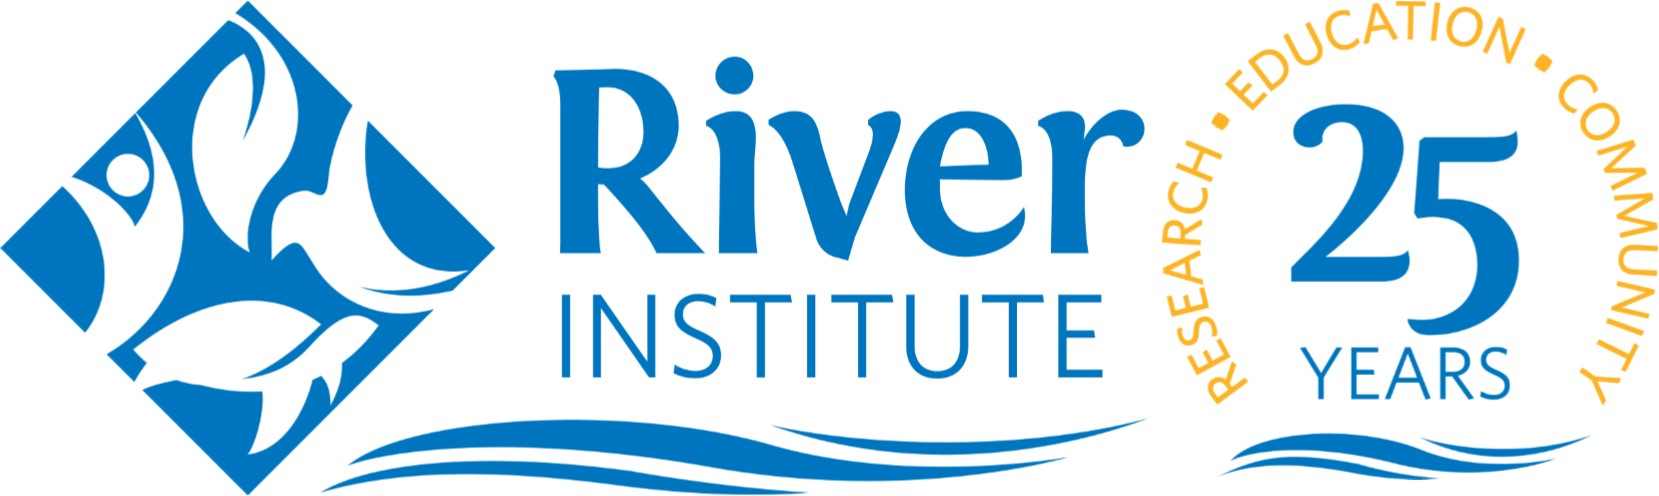 blue and gold river institute logo